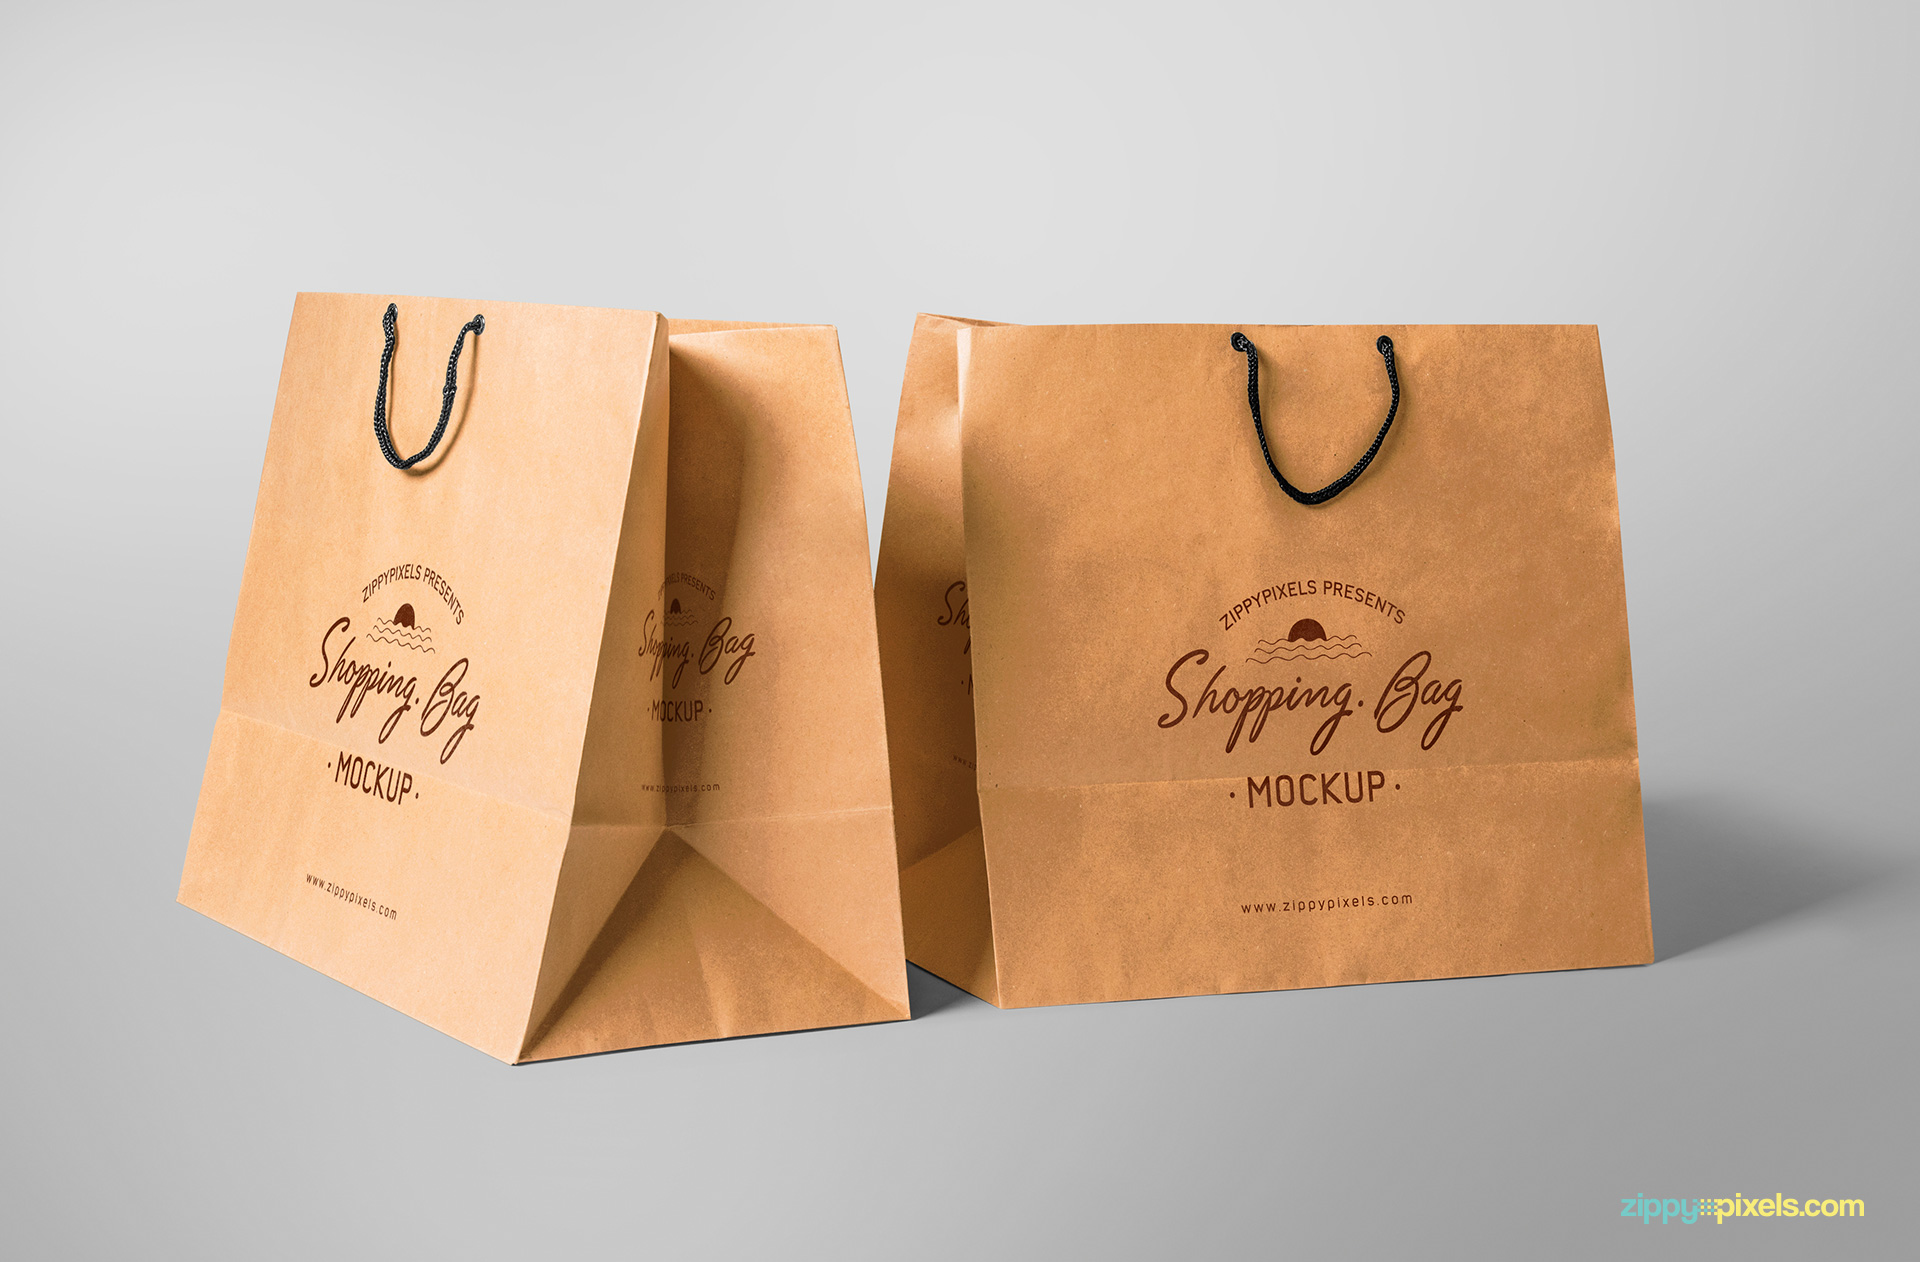 shopping-bag-mockup-side-front-views